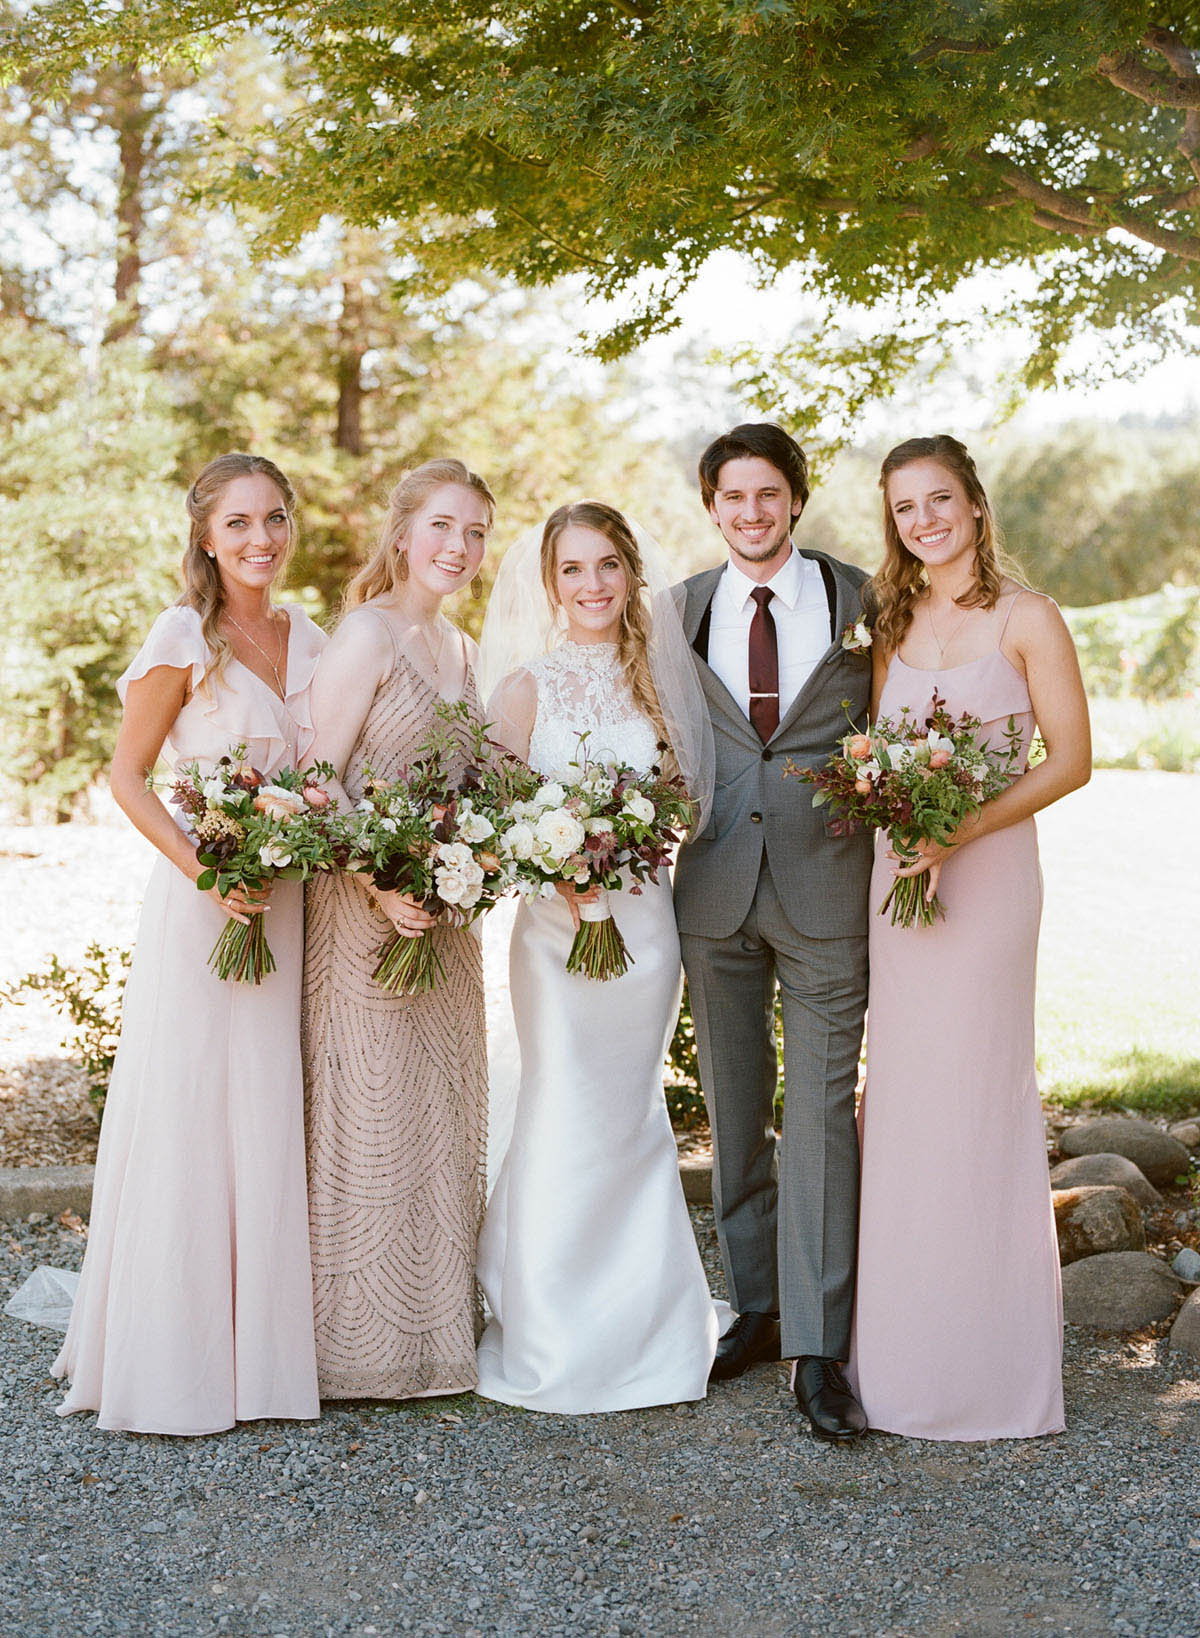 7-mismatched-bridesmaid-dresses.jpg